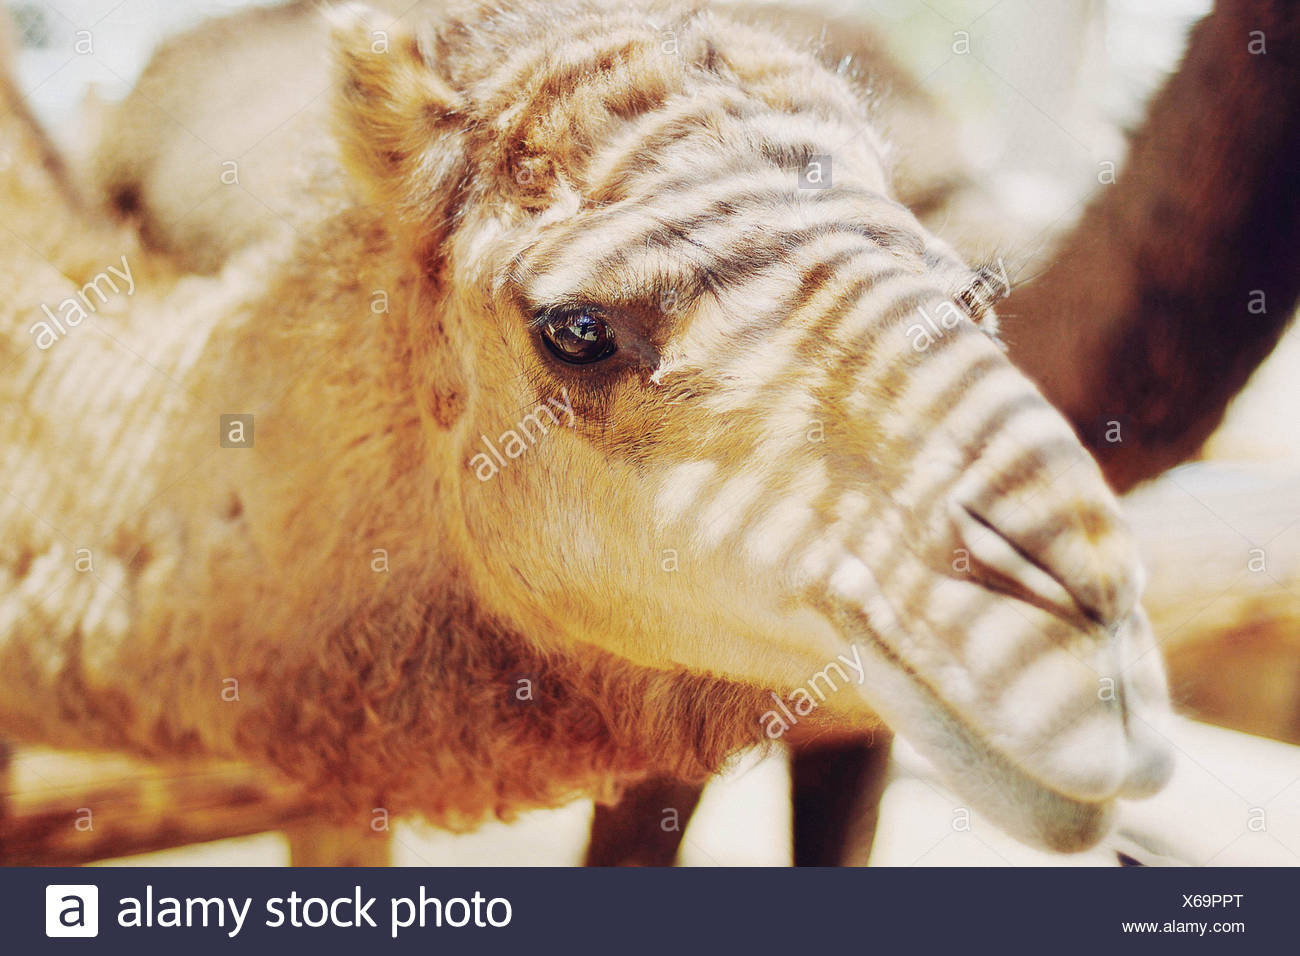 Close up of camel's head with streams of sunlight across face - Stock Image